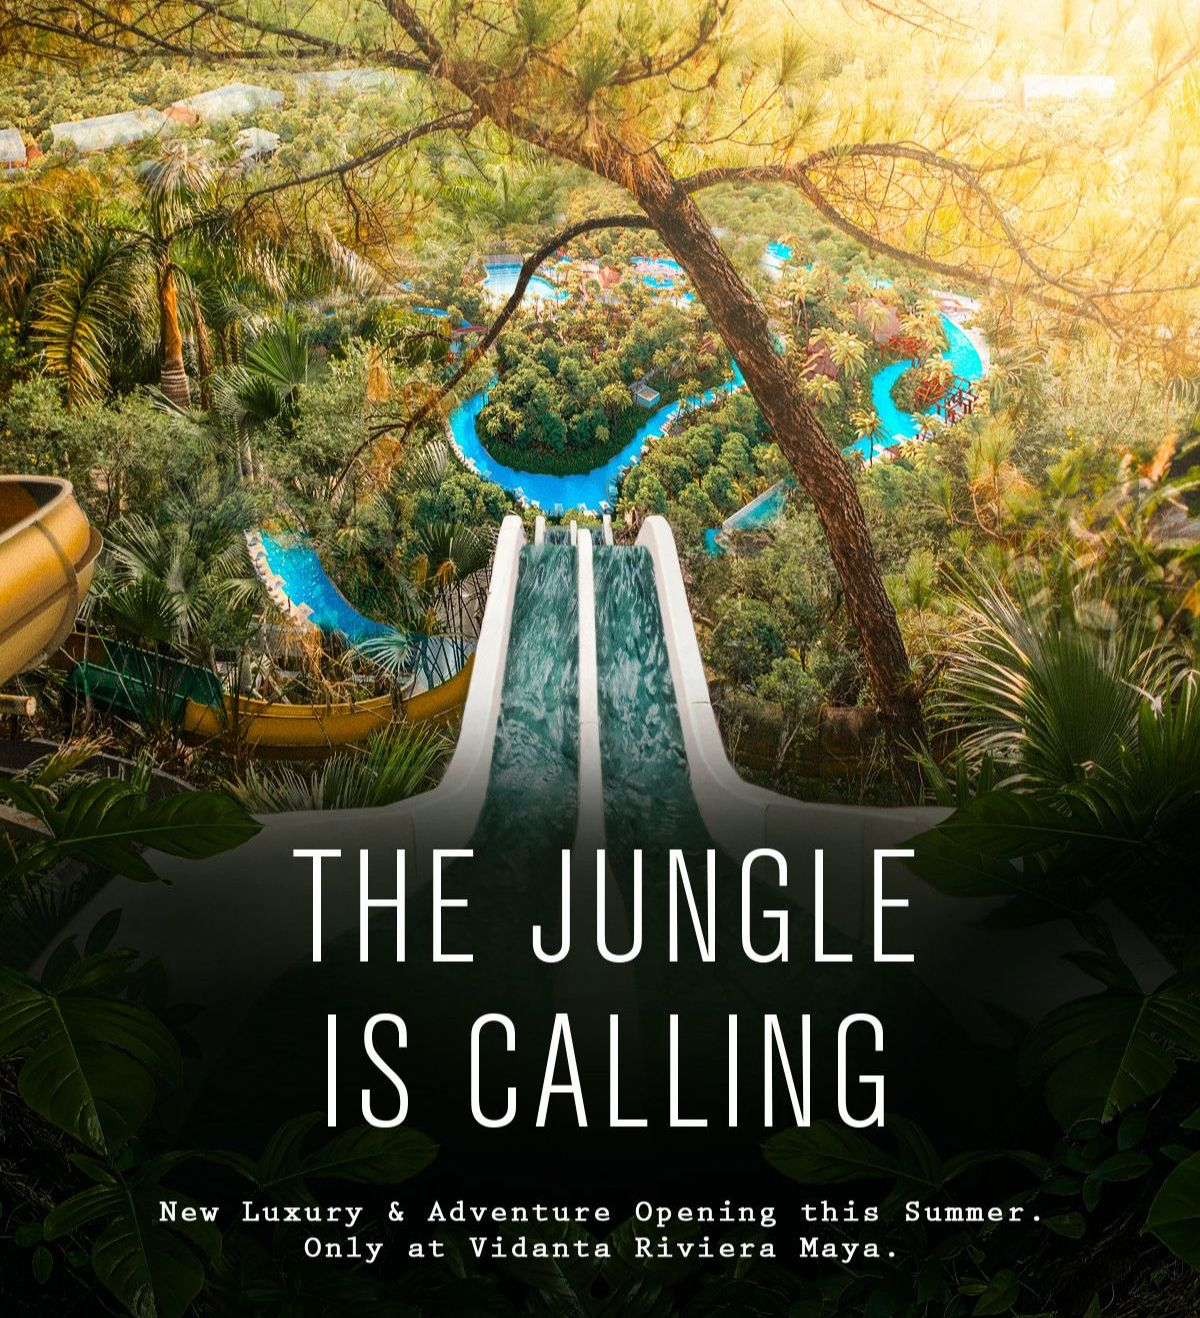 The Jungle is Calling